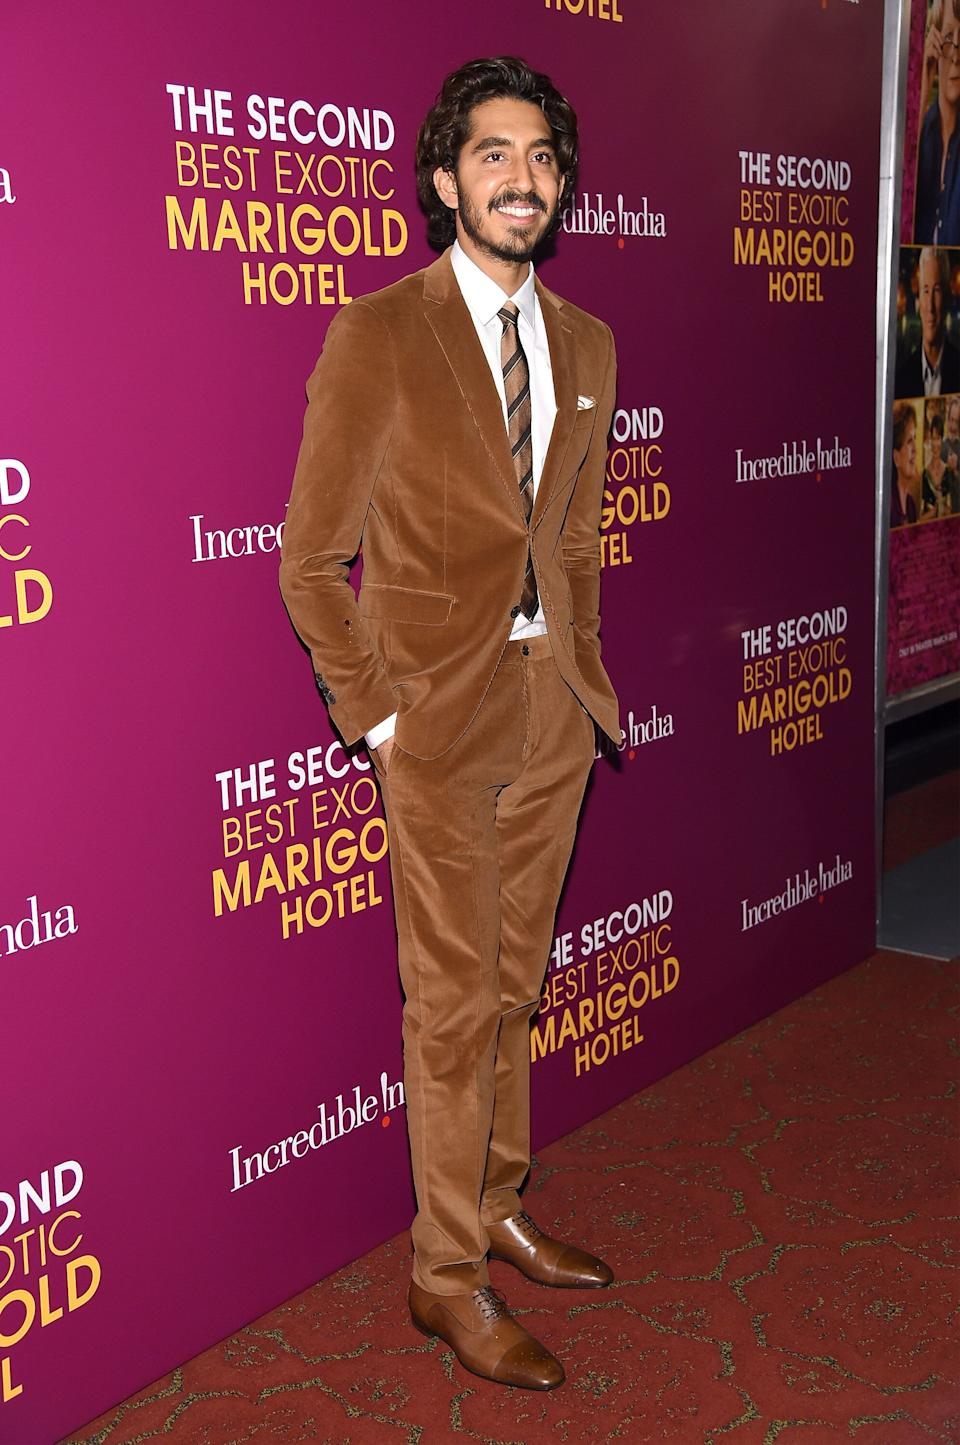 """Patel at the New York premiere of """"The Second Best Exotic Marigold Hotel"""" at the Ziegfeld Theater on March 3, 2015."""